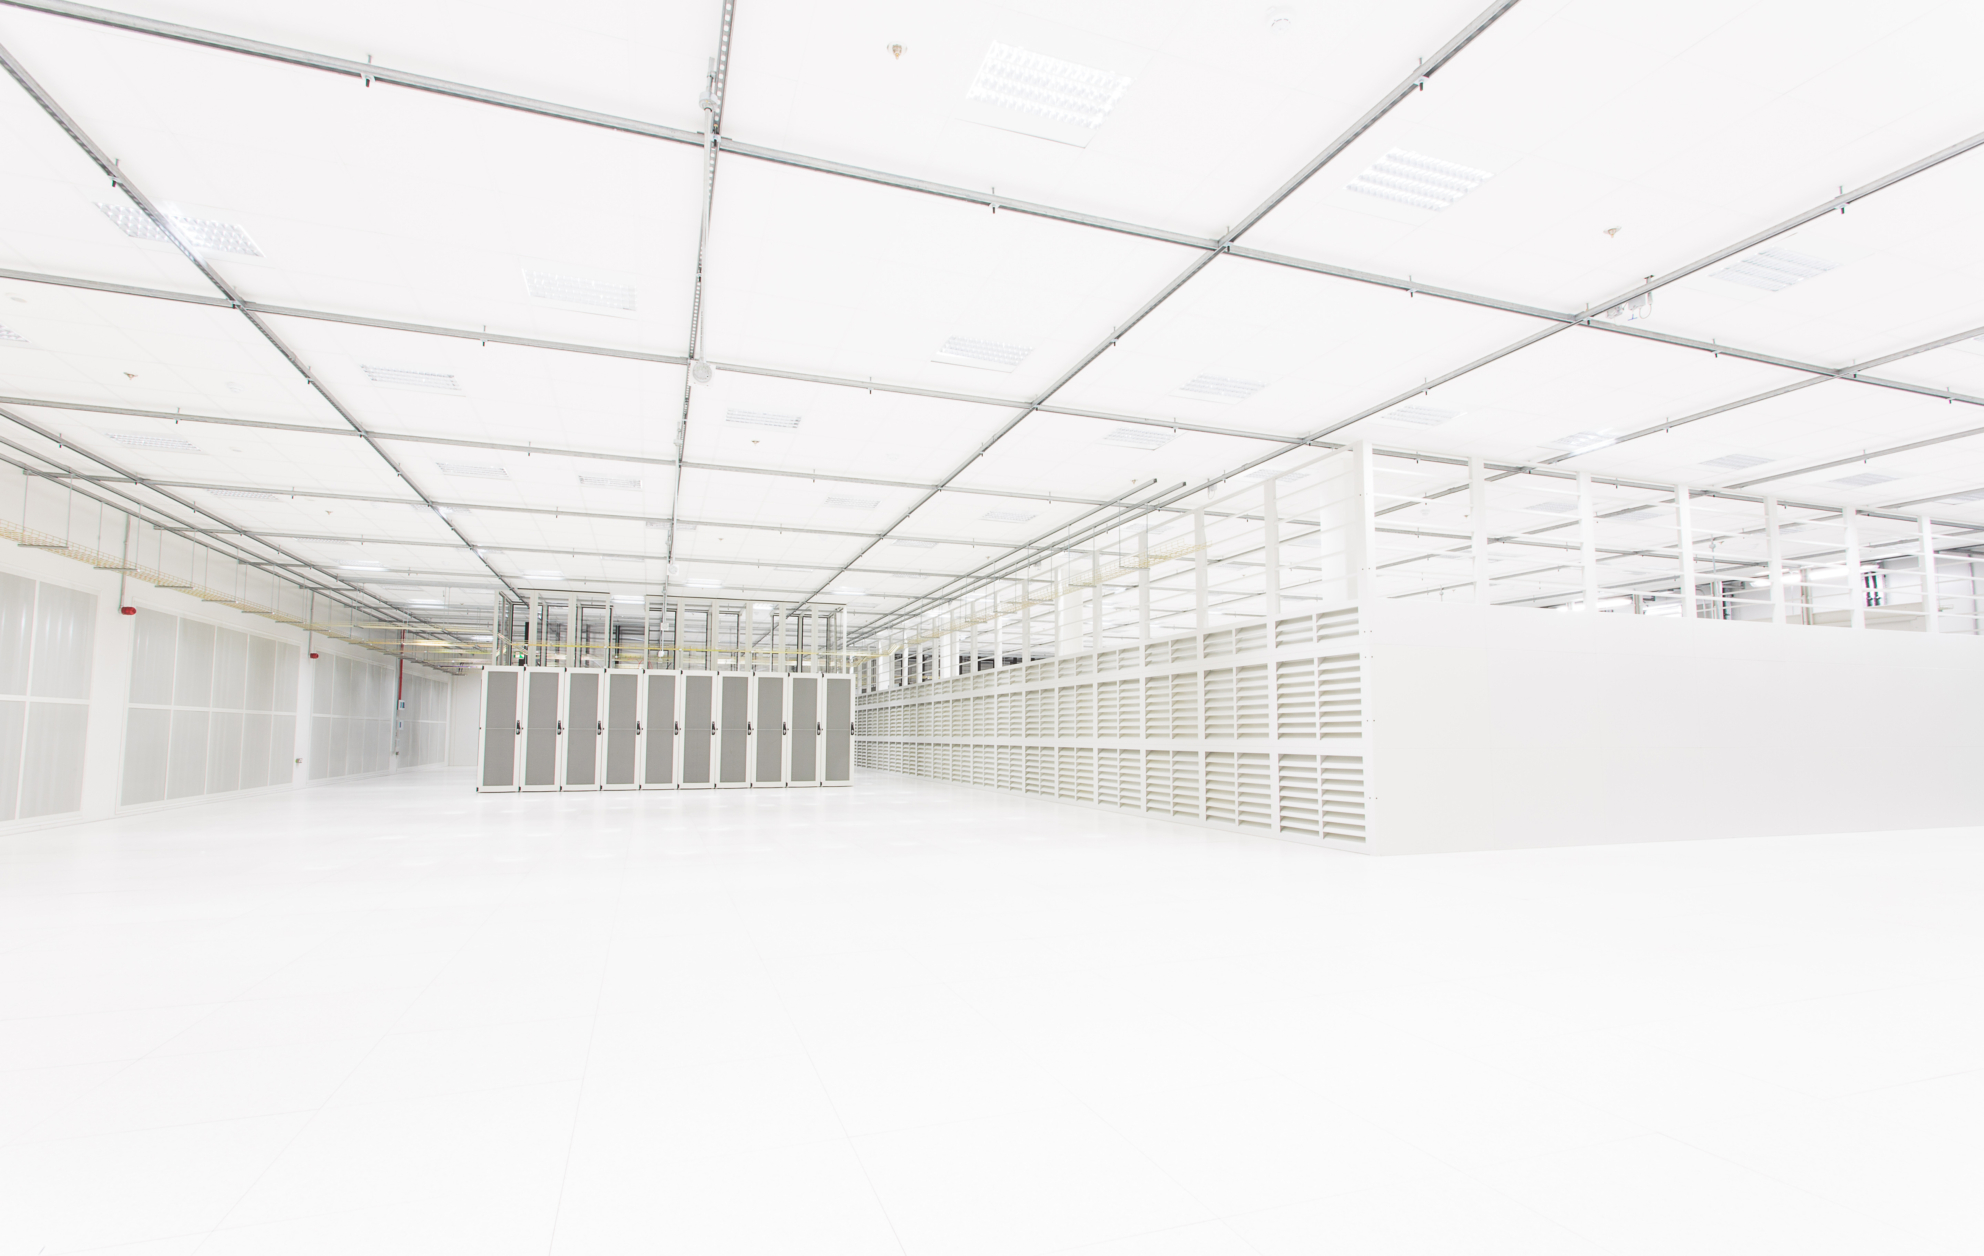 Image showing the inside of a computing warehouse, in white and faint tones.